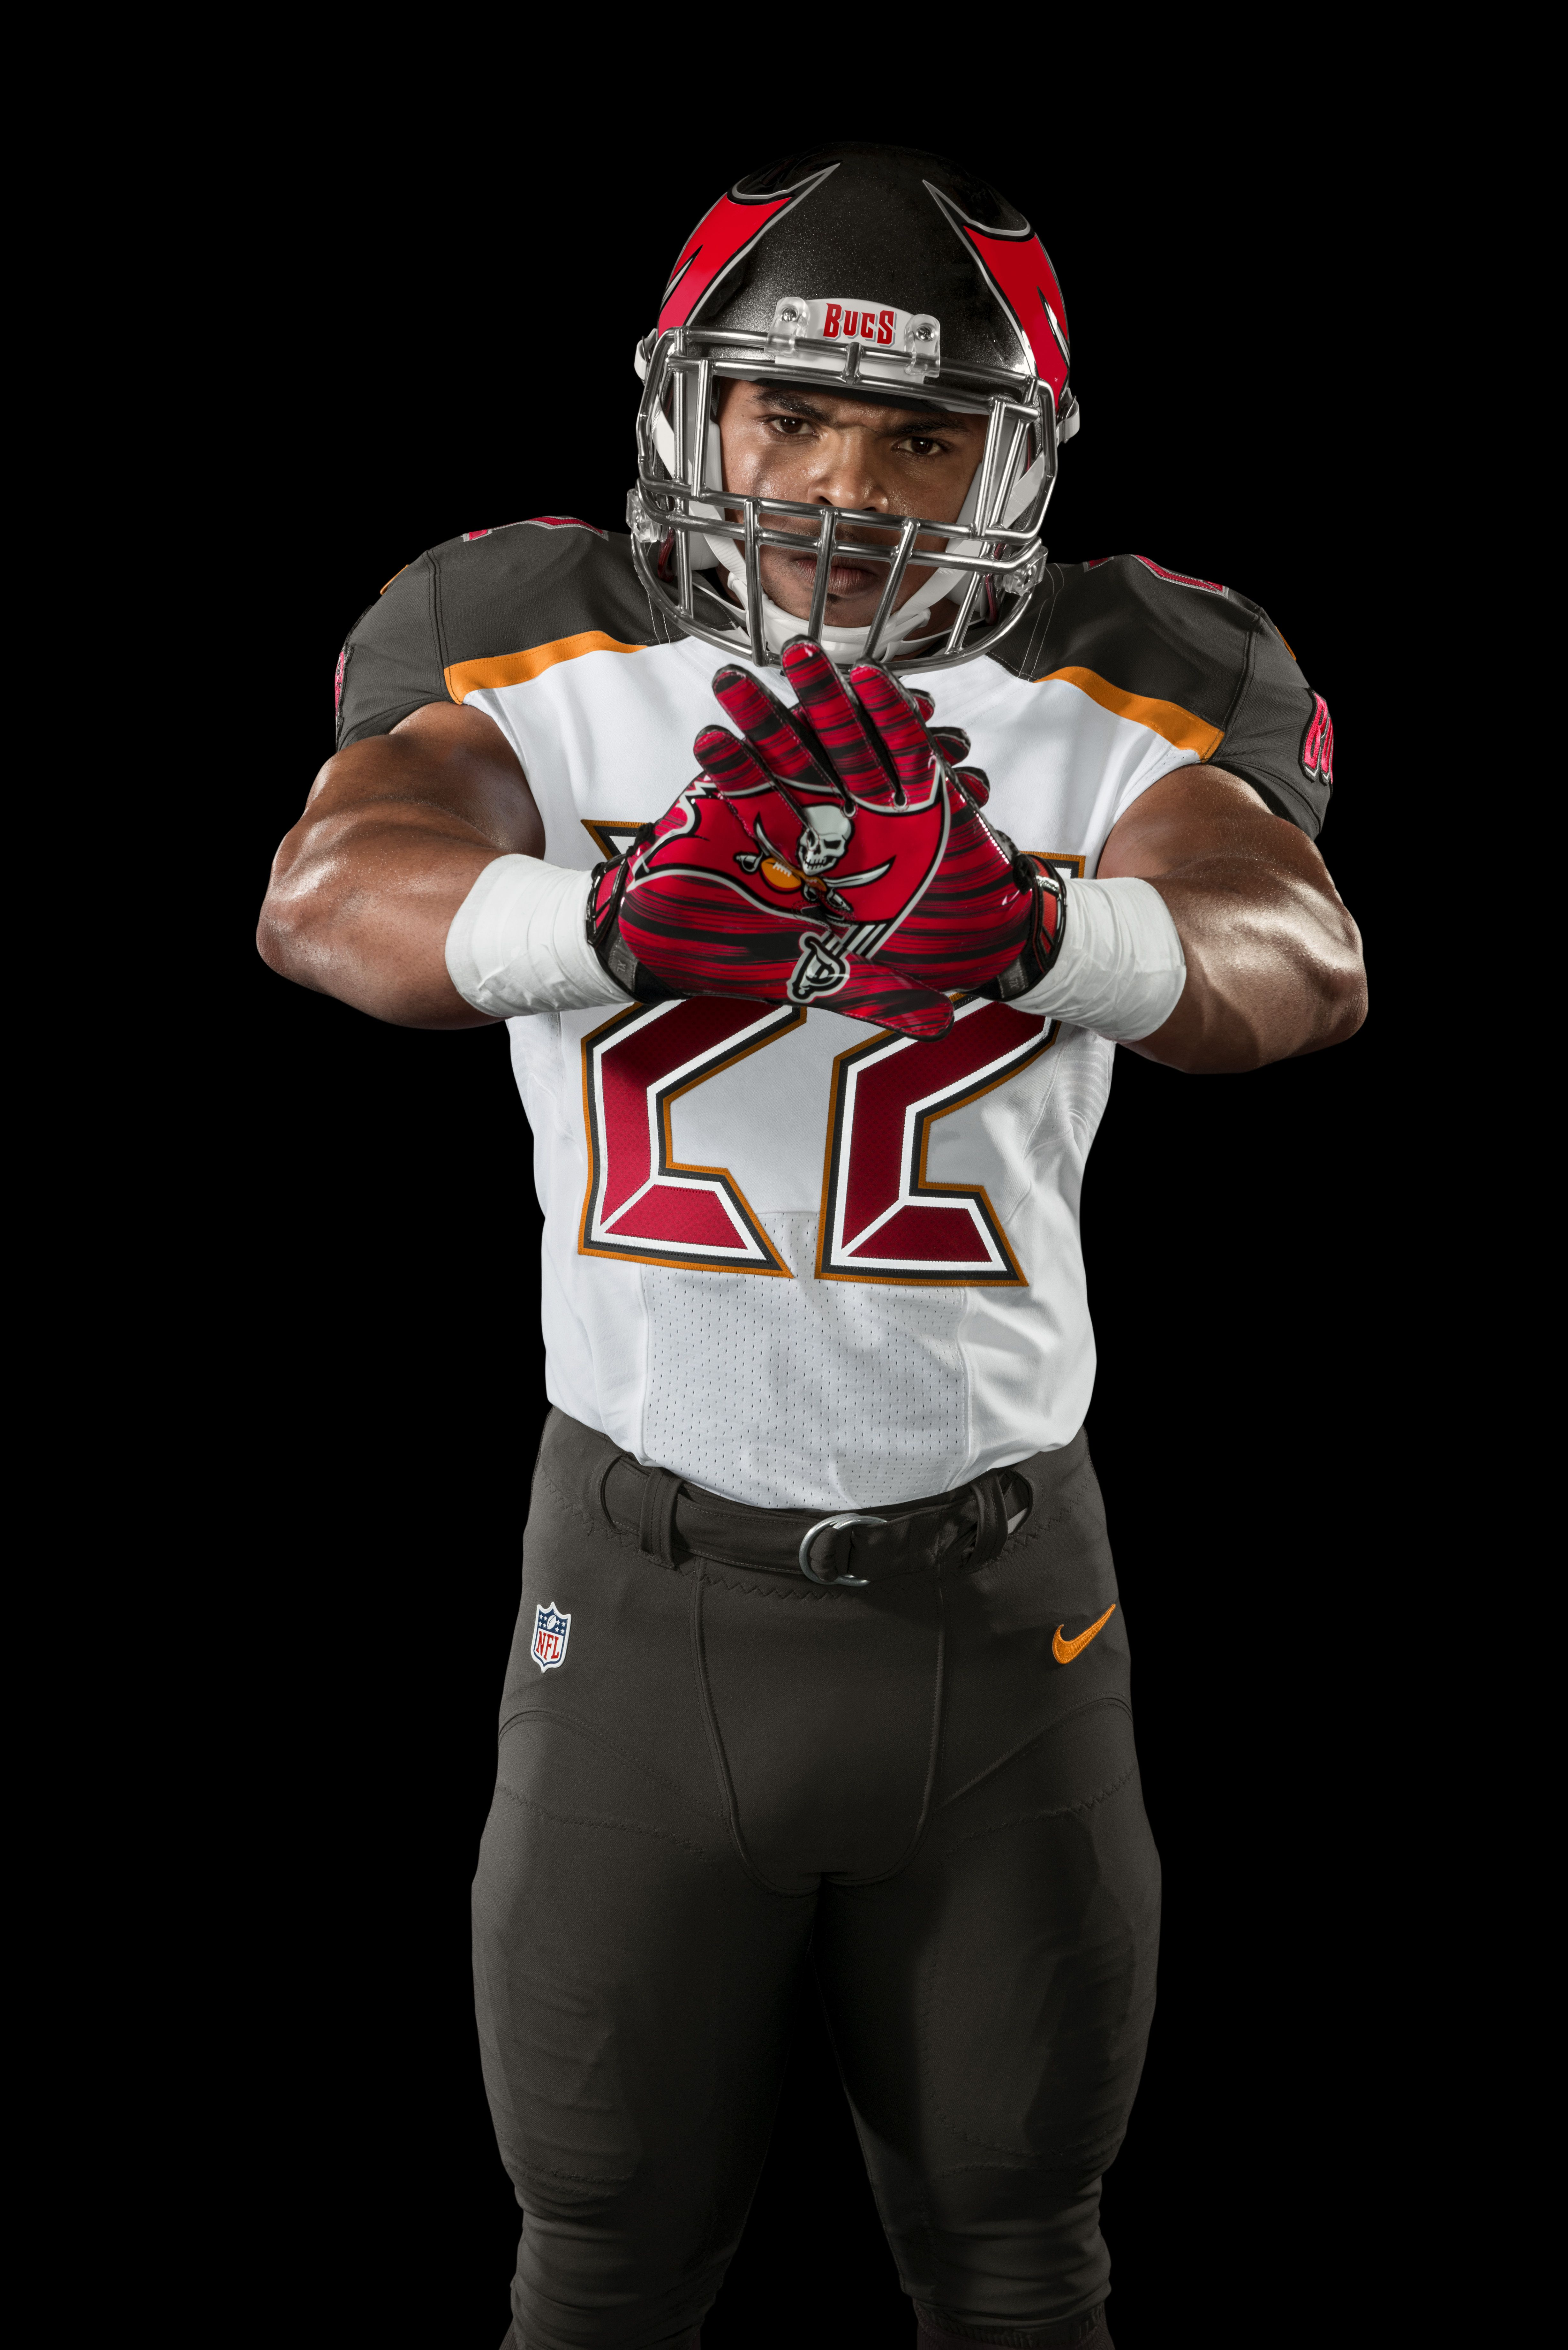 Top Doug Martin | Awesome | Tampa bay buccaneers, Nfl uniforms, Football